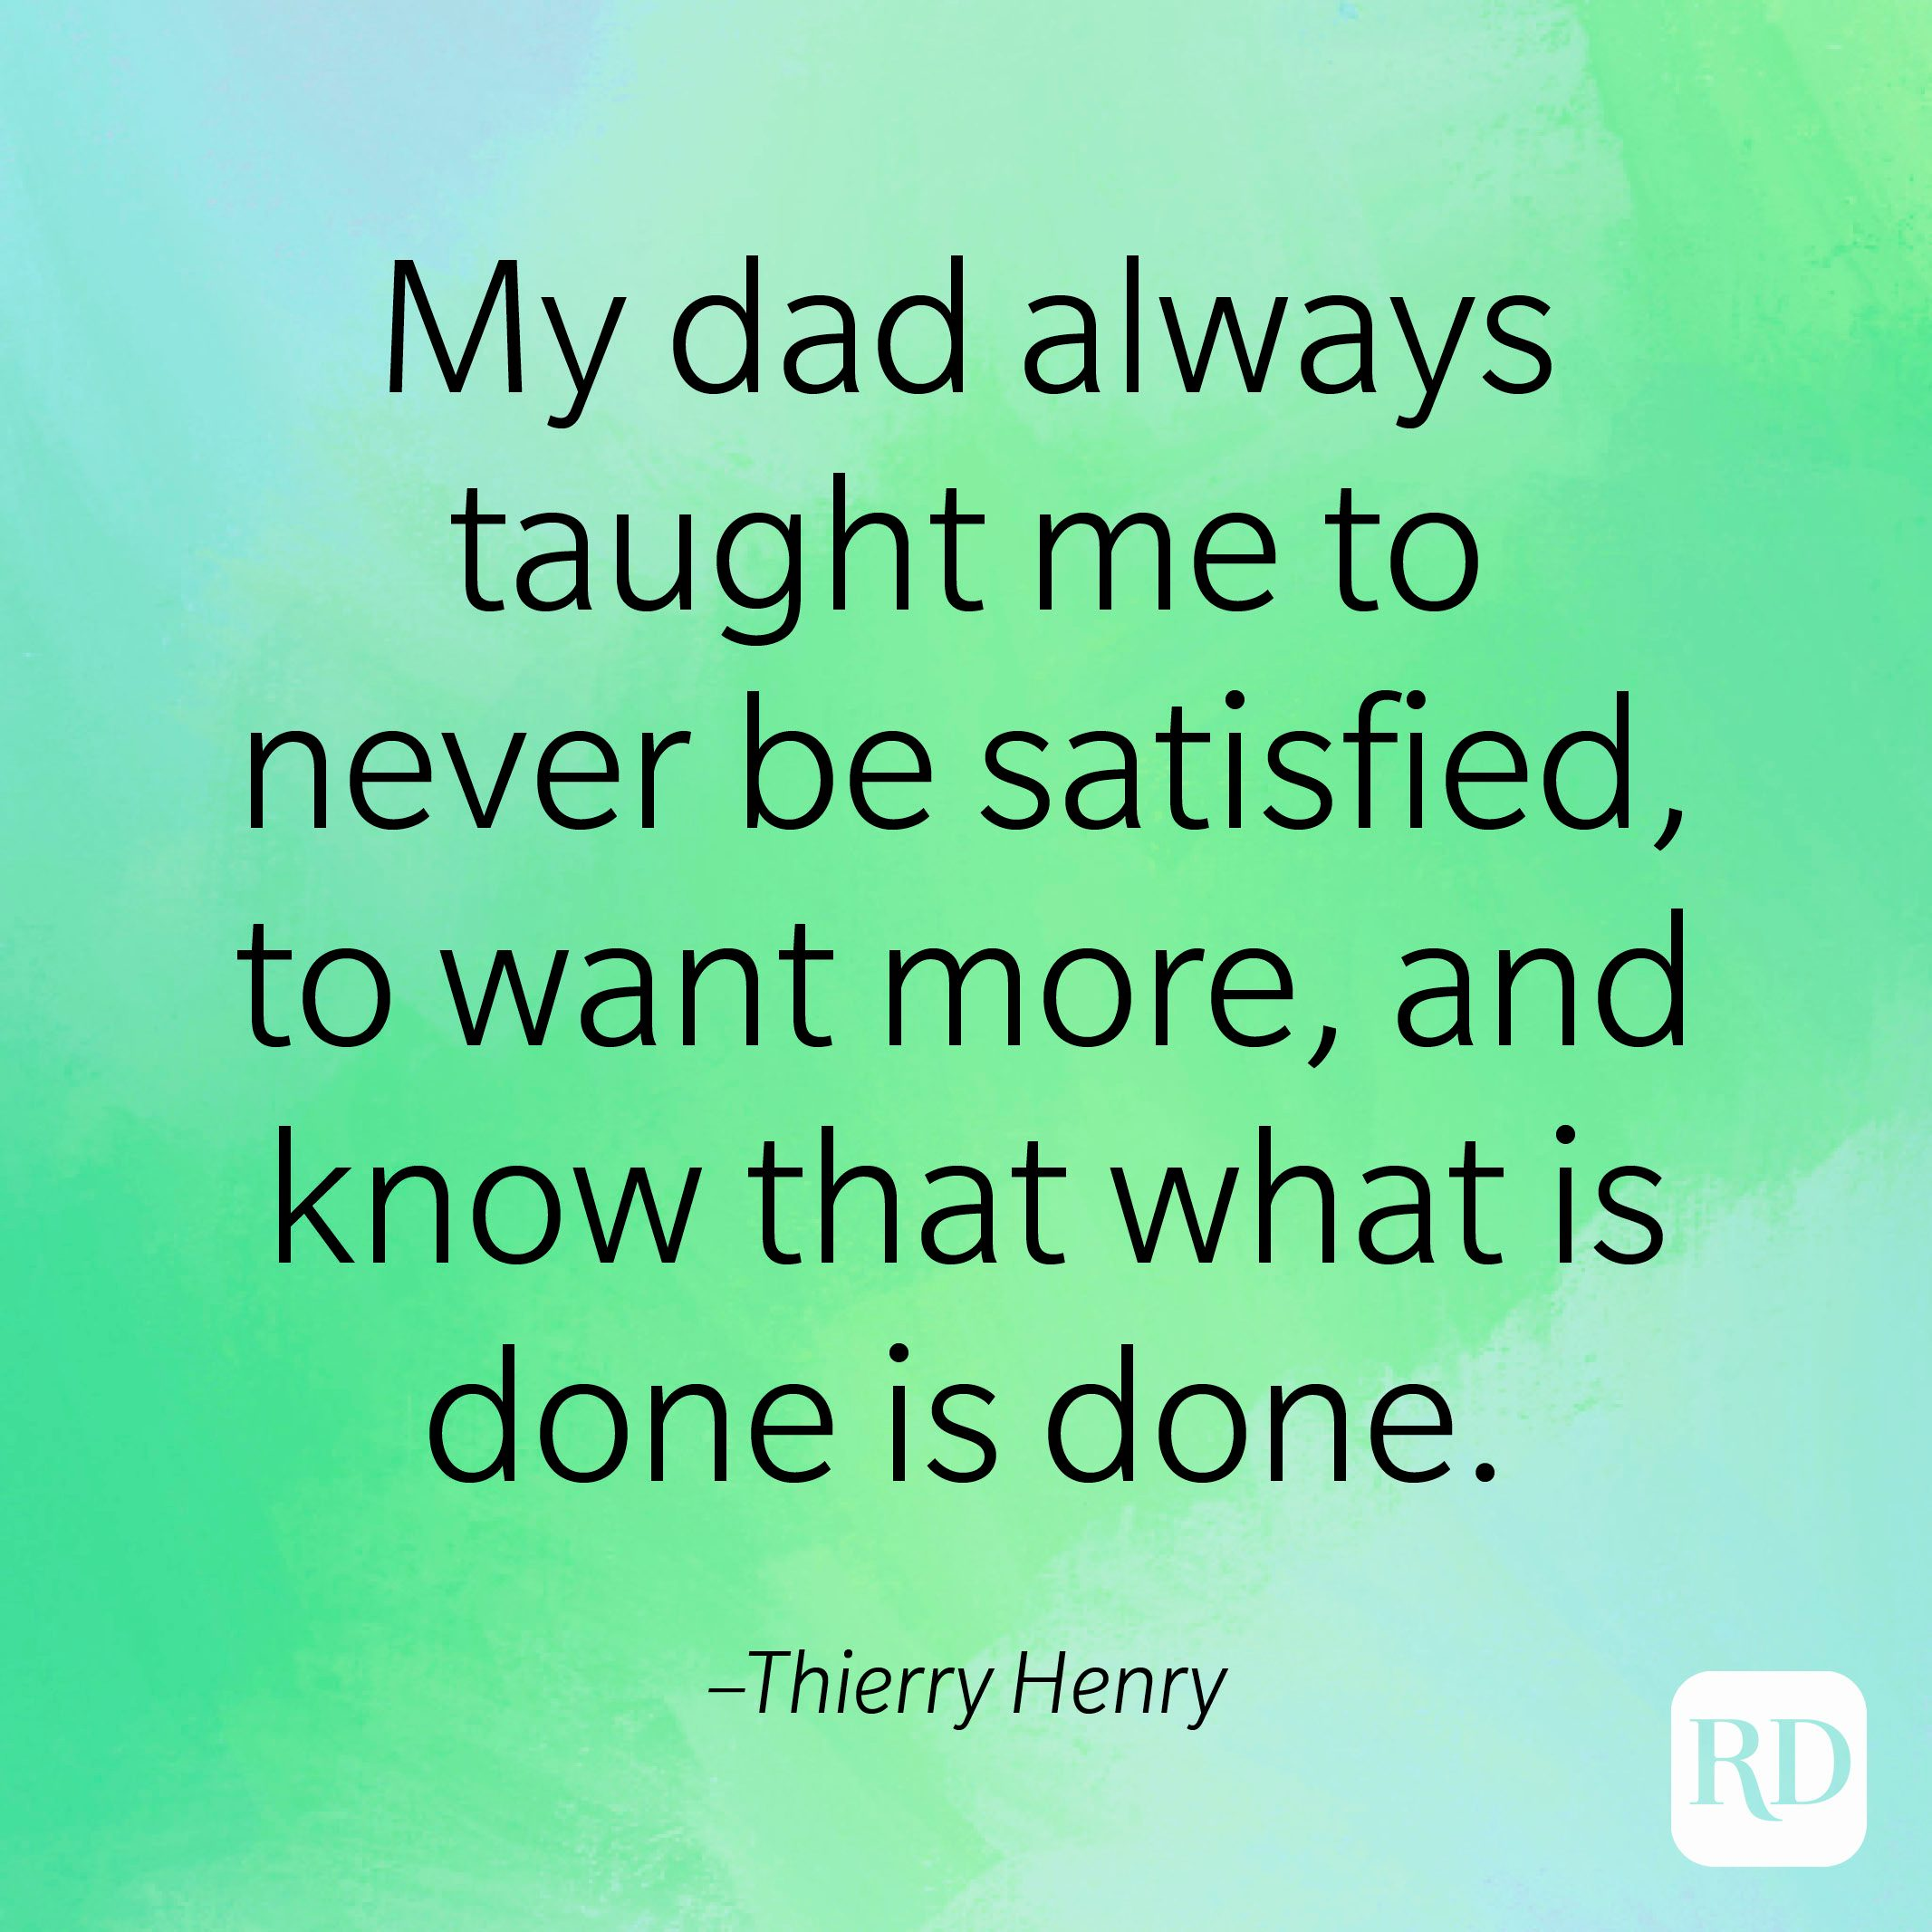 """""""My dad always taught me to never be satisfied, to want more, and know that what is done is done."""" –Thierry Henry"""